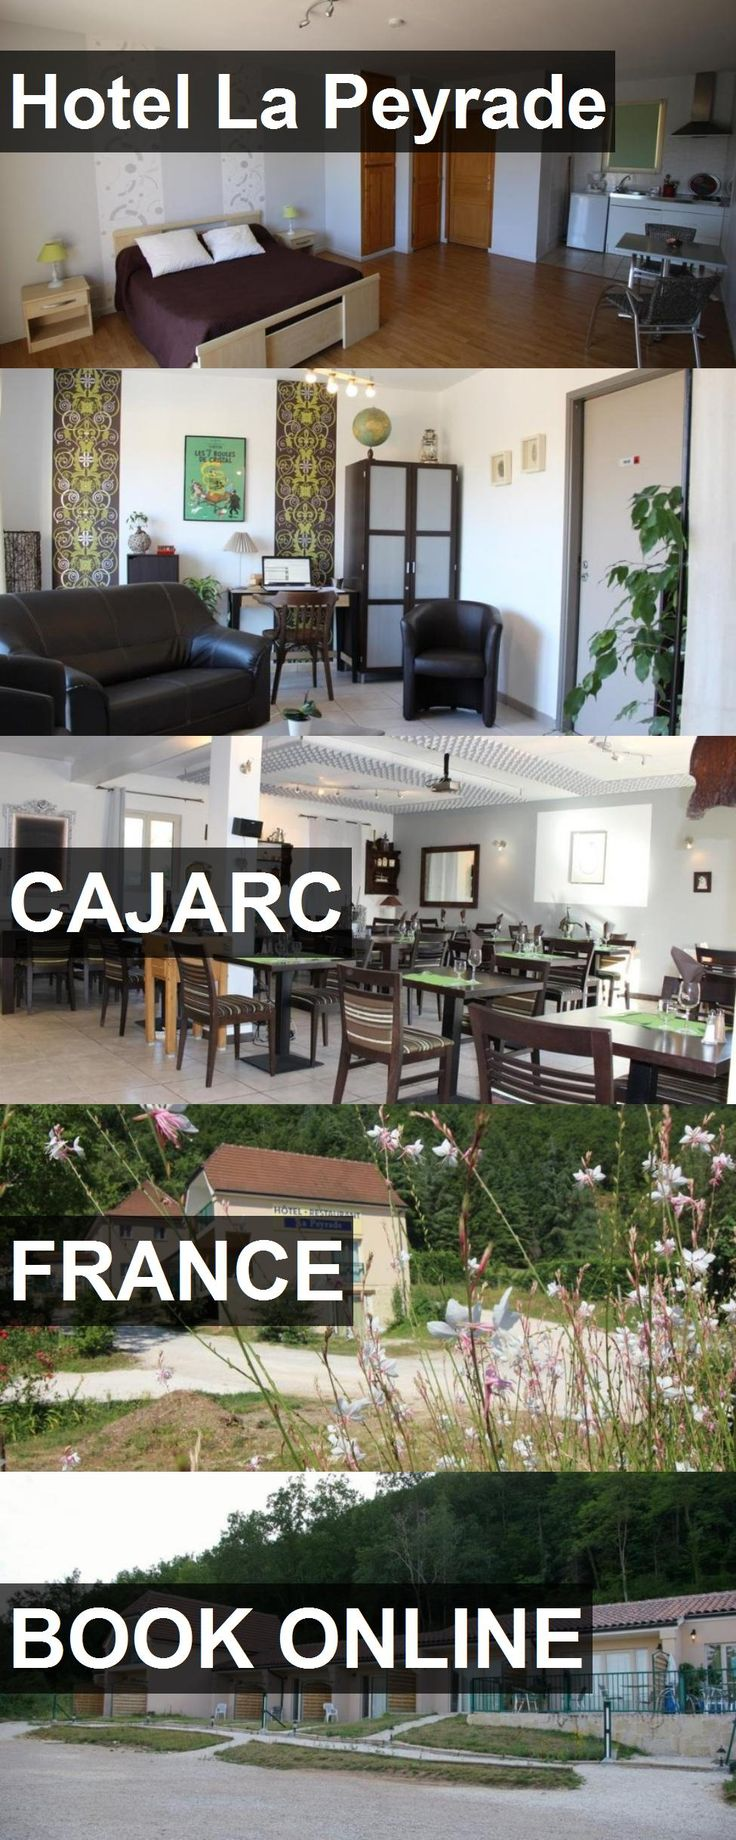 Hotel La Peyrade in Cajarc, France. For more information, photos, reviews and best prices please follow the link. #France #Cajarc #travel #vacation #hotel